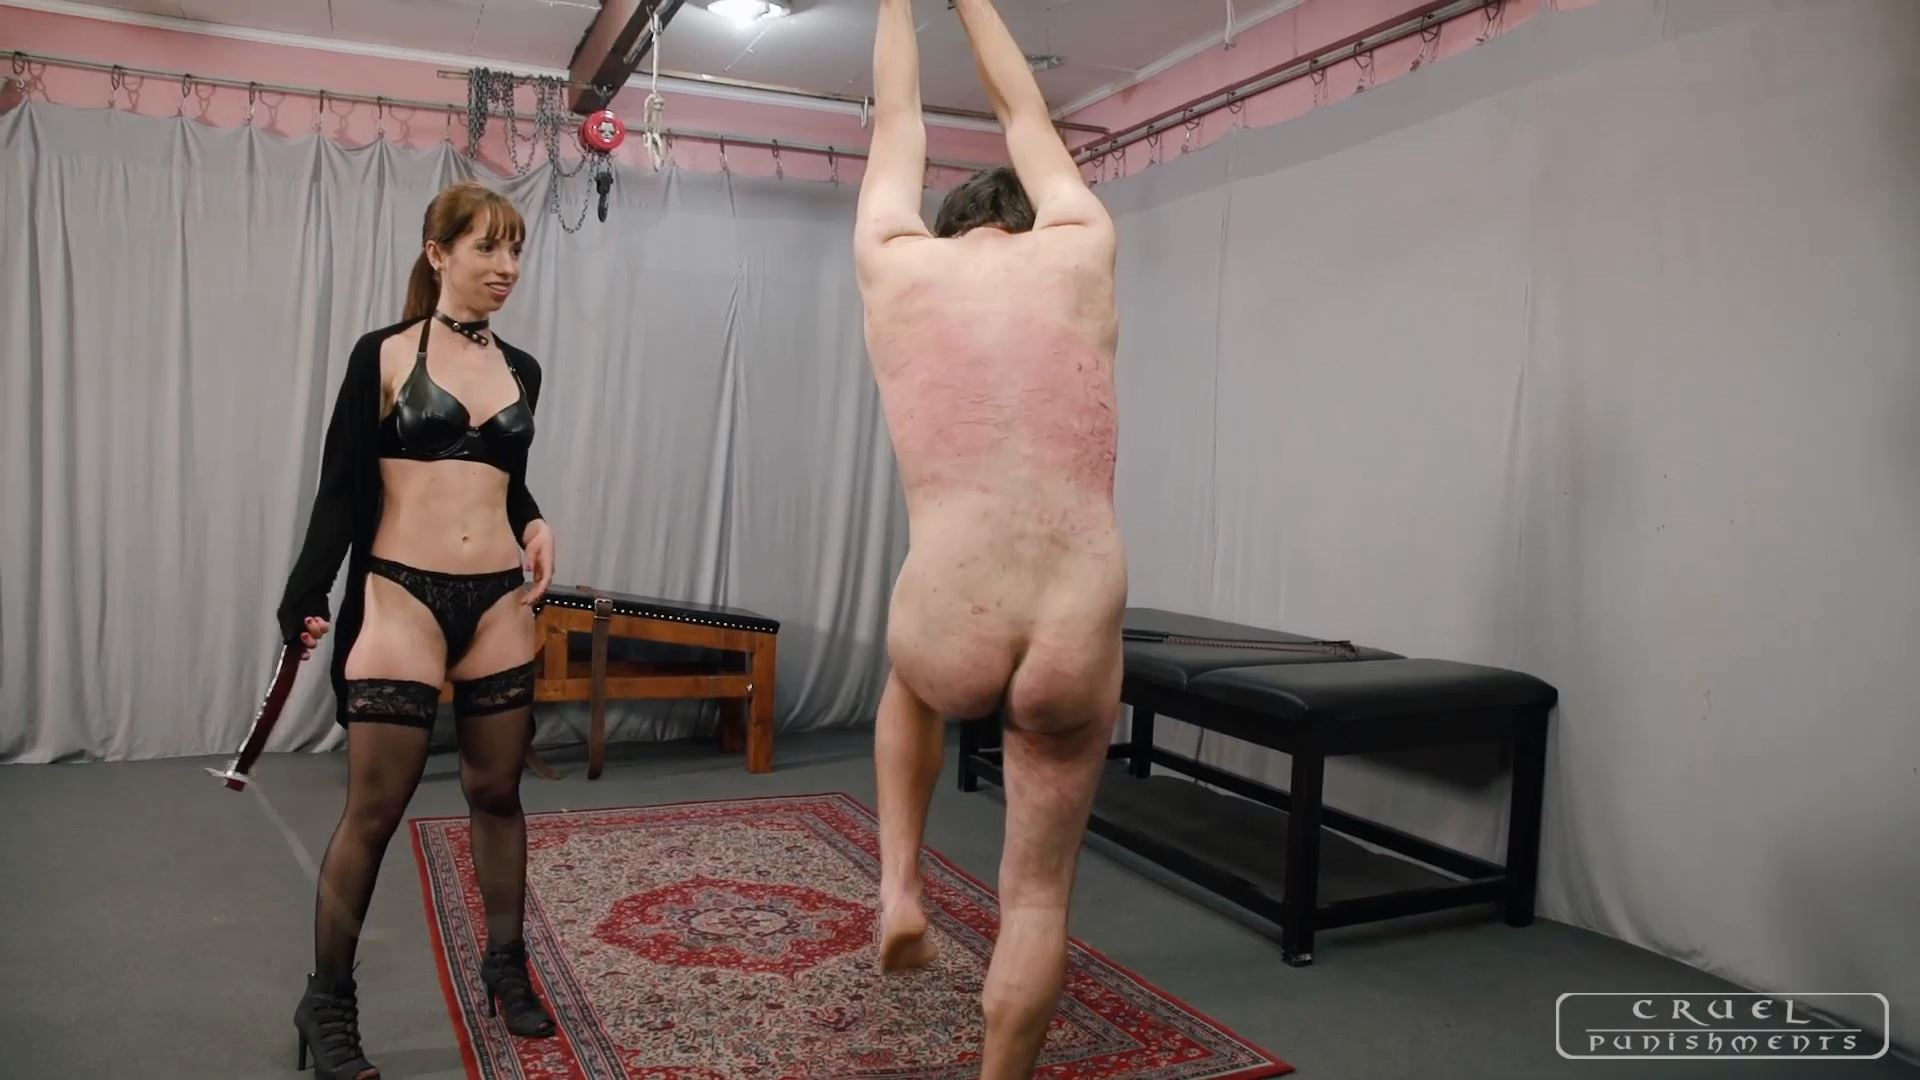 Mistress Nina In Scene: Three punishments for the slave Part 3 - CRUEL PUNISHMENTS - SEVERE FEMDOM - FULL HD/1080p/MP4